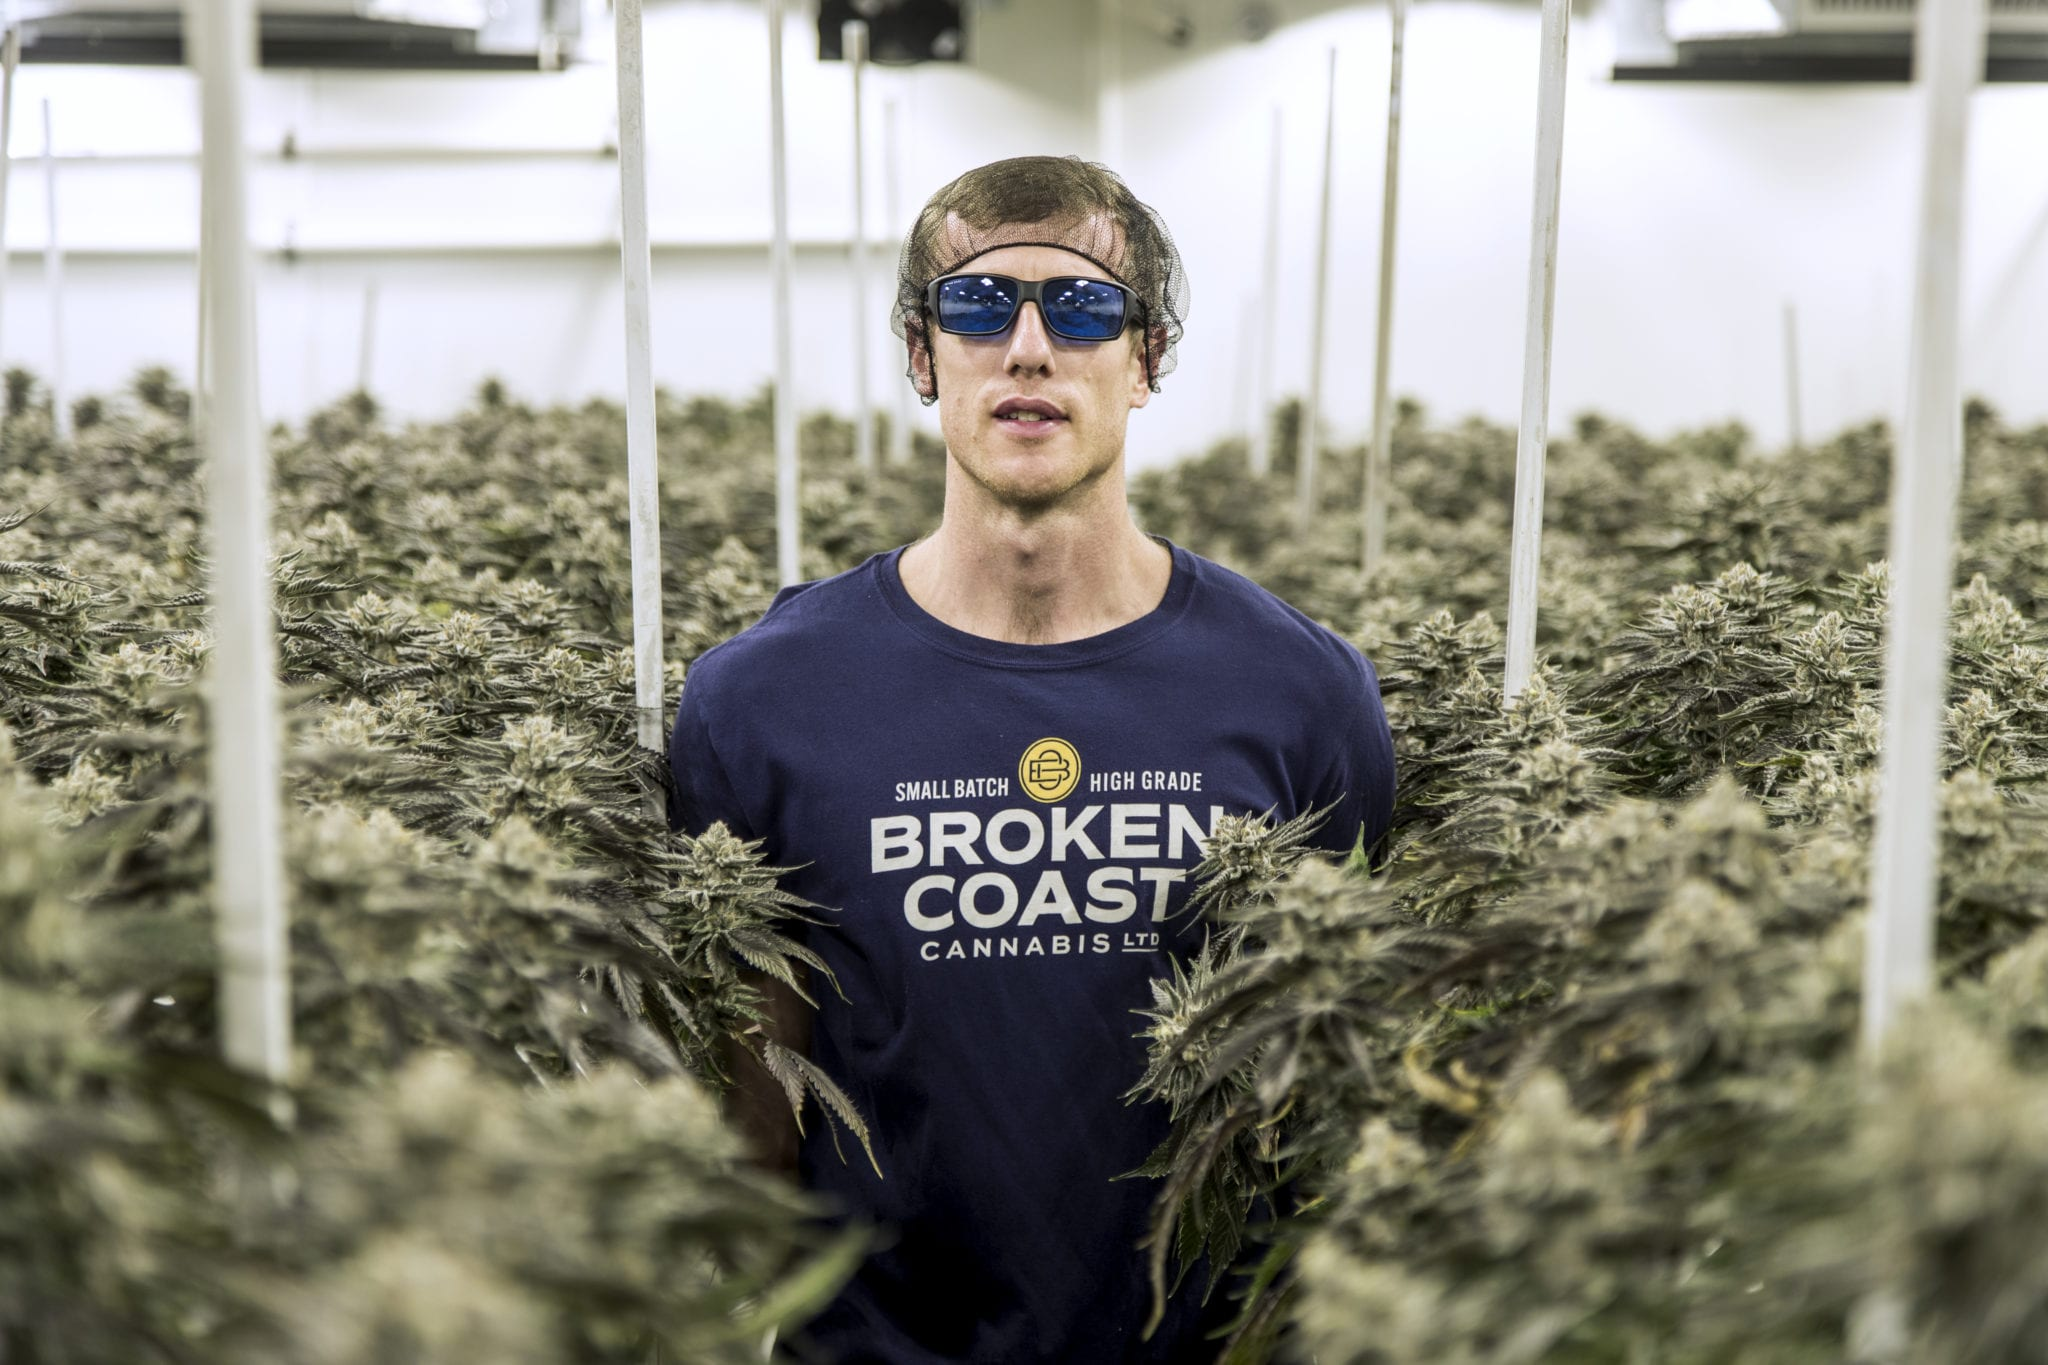 'No way to compromise on quality': a conversation with Broken Coast's Kevin Anderson